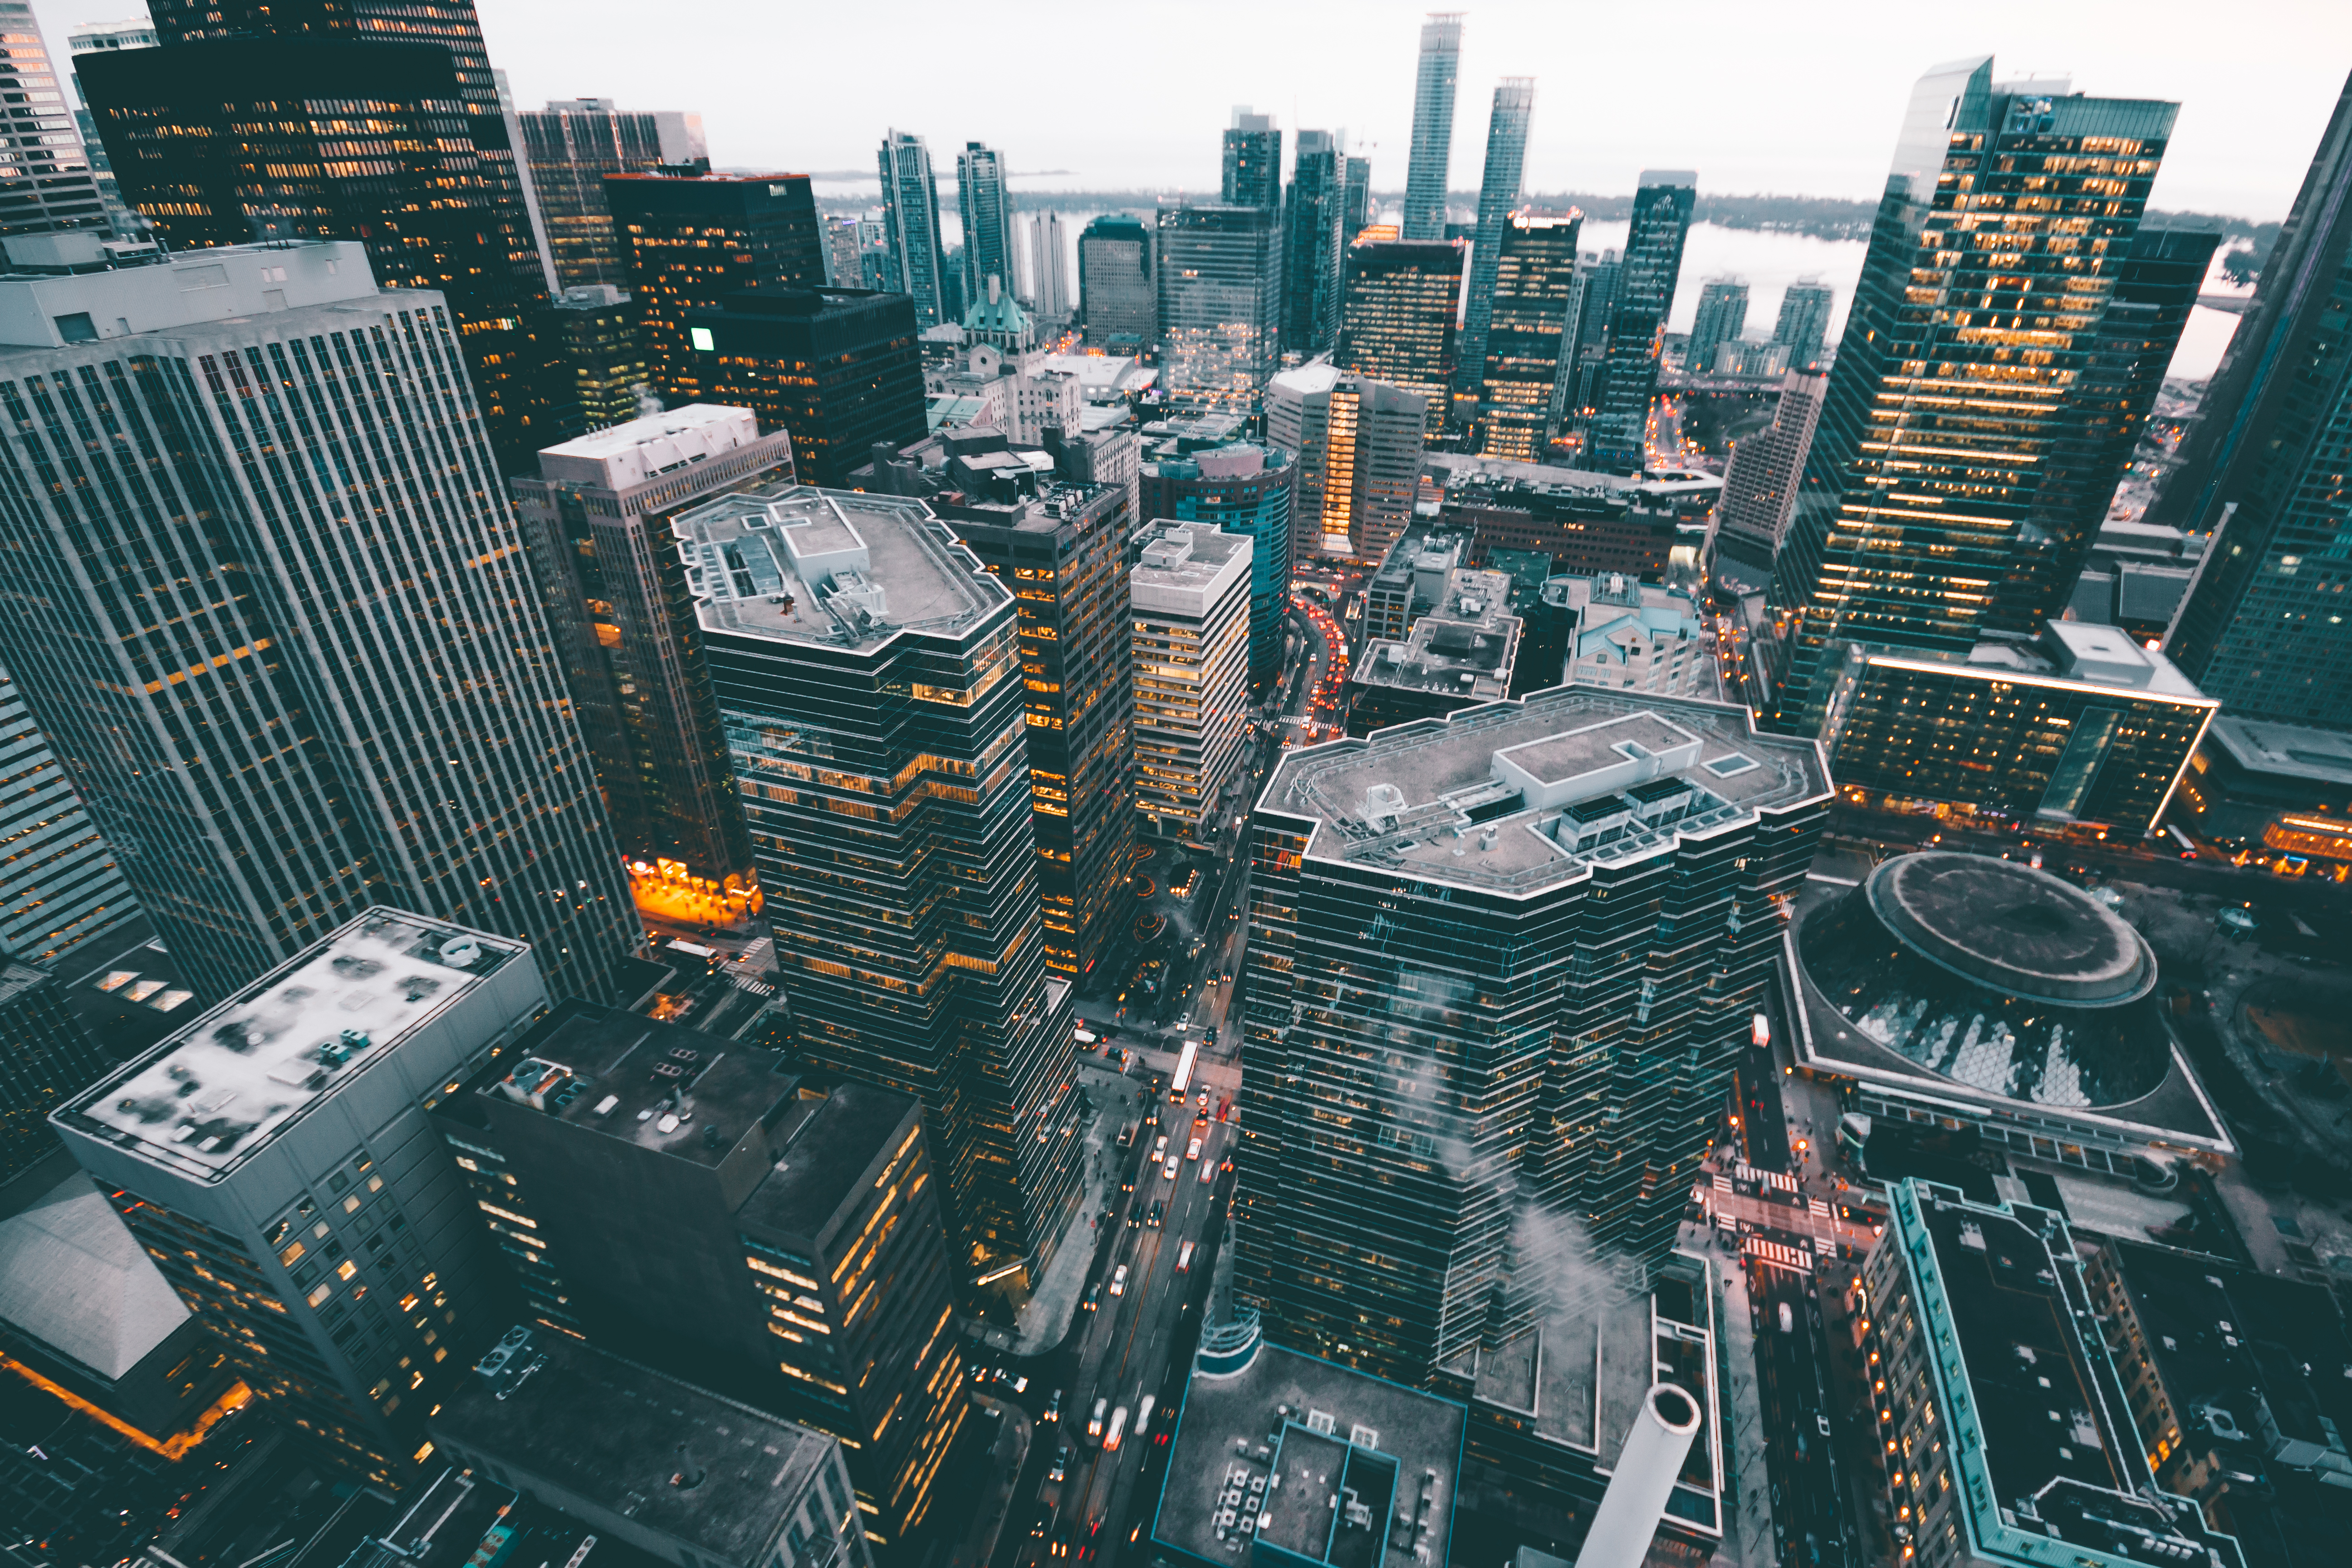 City Pictures Pexels Free Stock Photos - Epic photos taken from the rooftops offer a new perspective of london